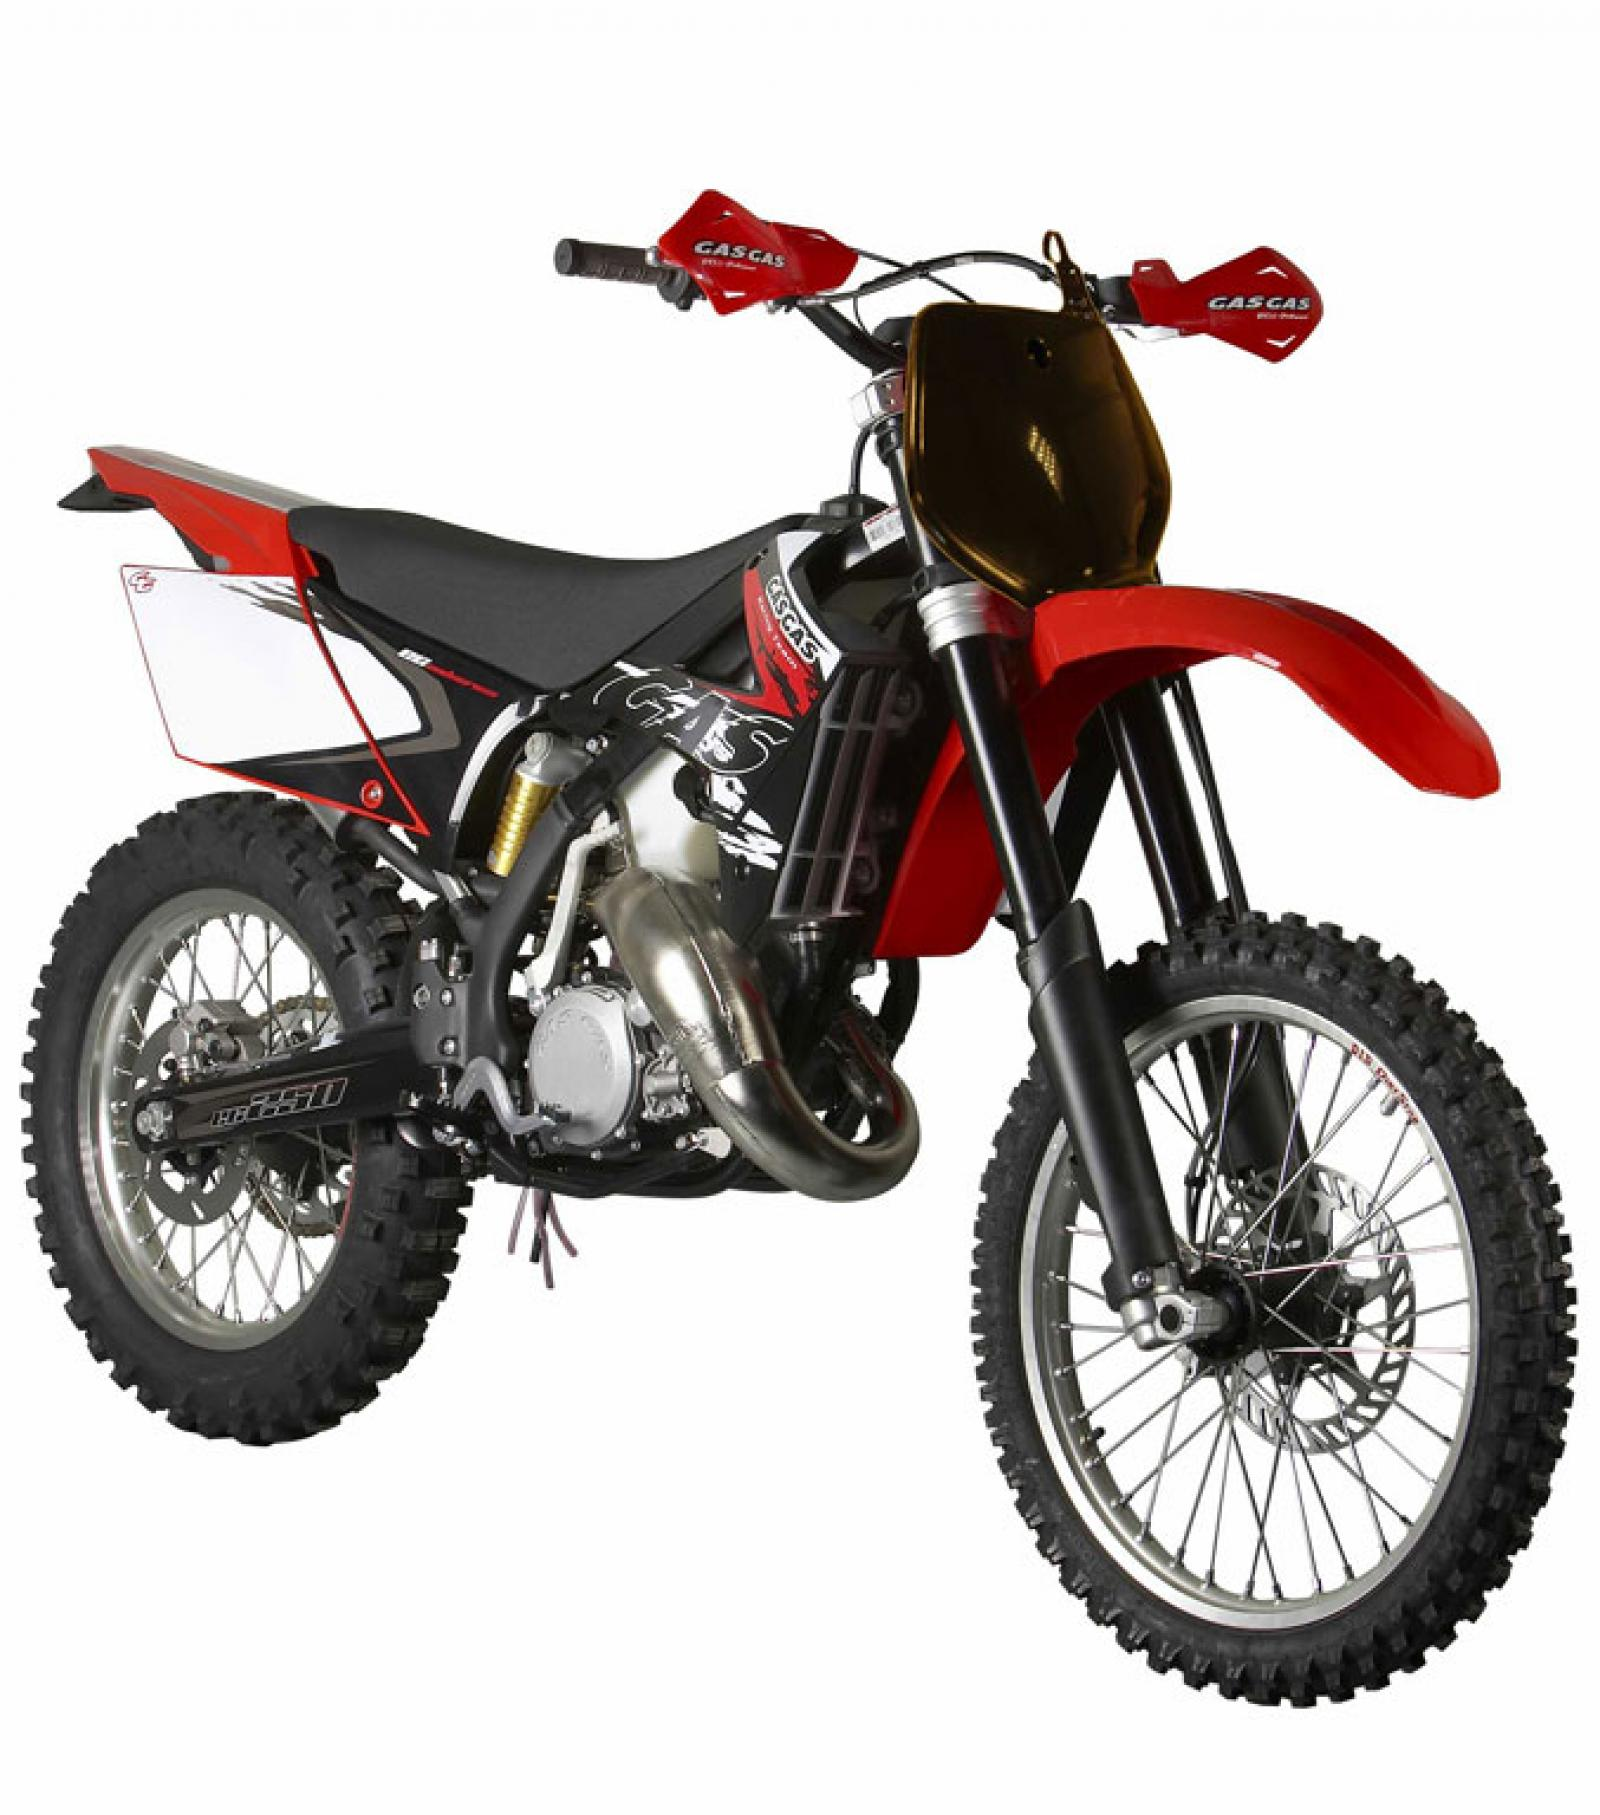 2008 gas gas mc 250 cross moto zombdrive KTM 350 Enduro